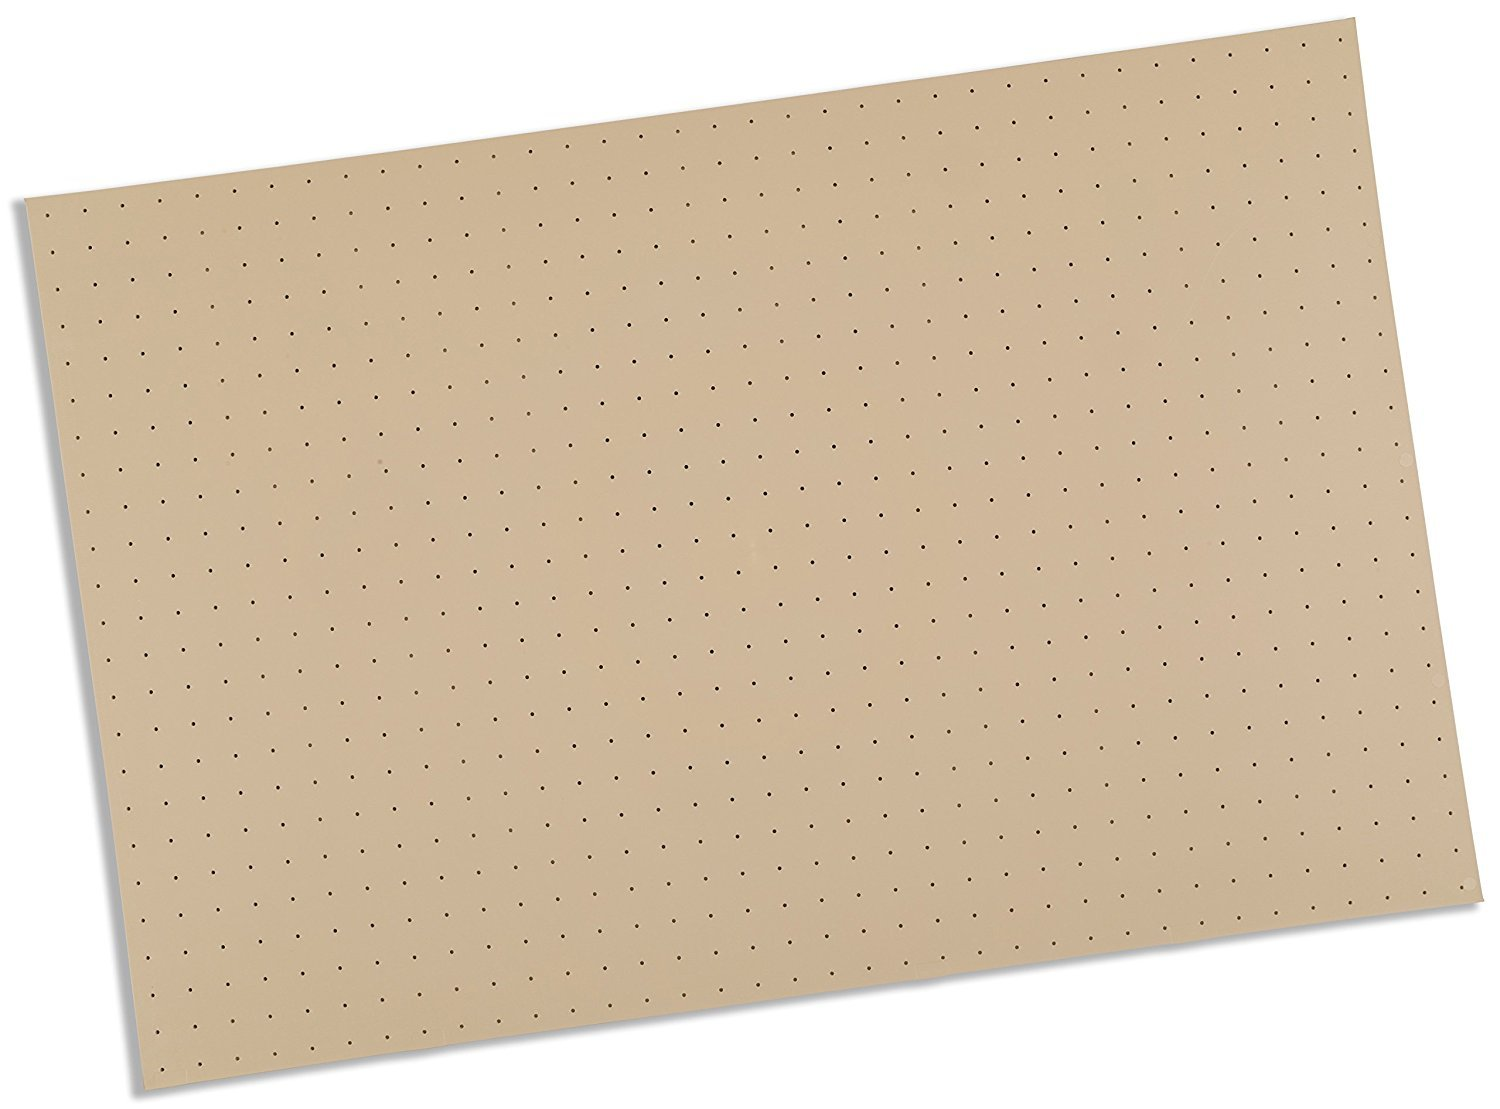 Rolyan Splinting Material Sheets, Ezeform, Beige, 1/8'' x 18'' x 24'', 1% Perforated, 4 Sheets